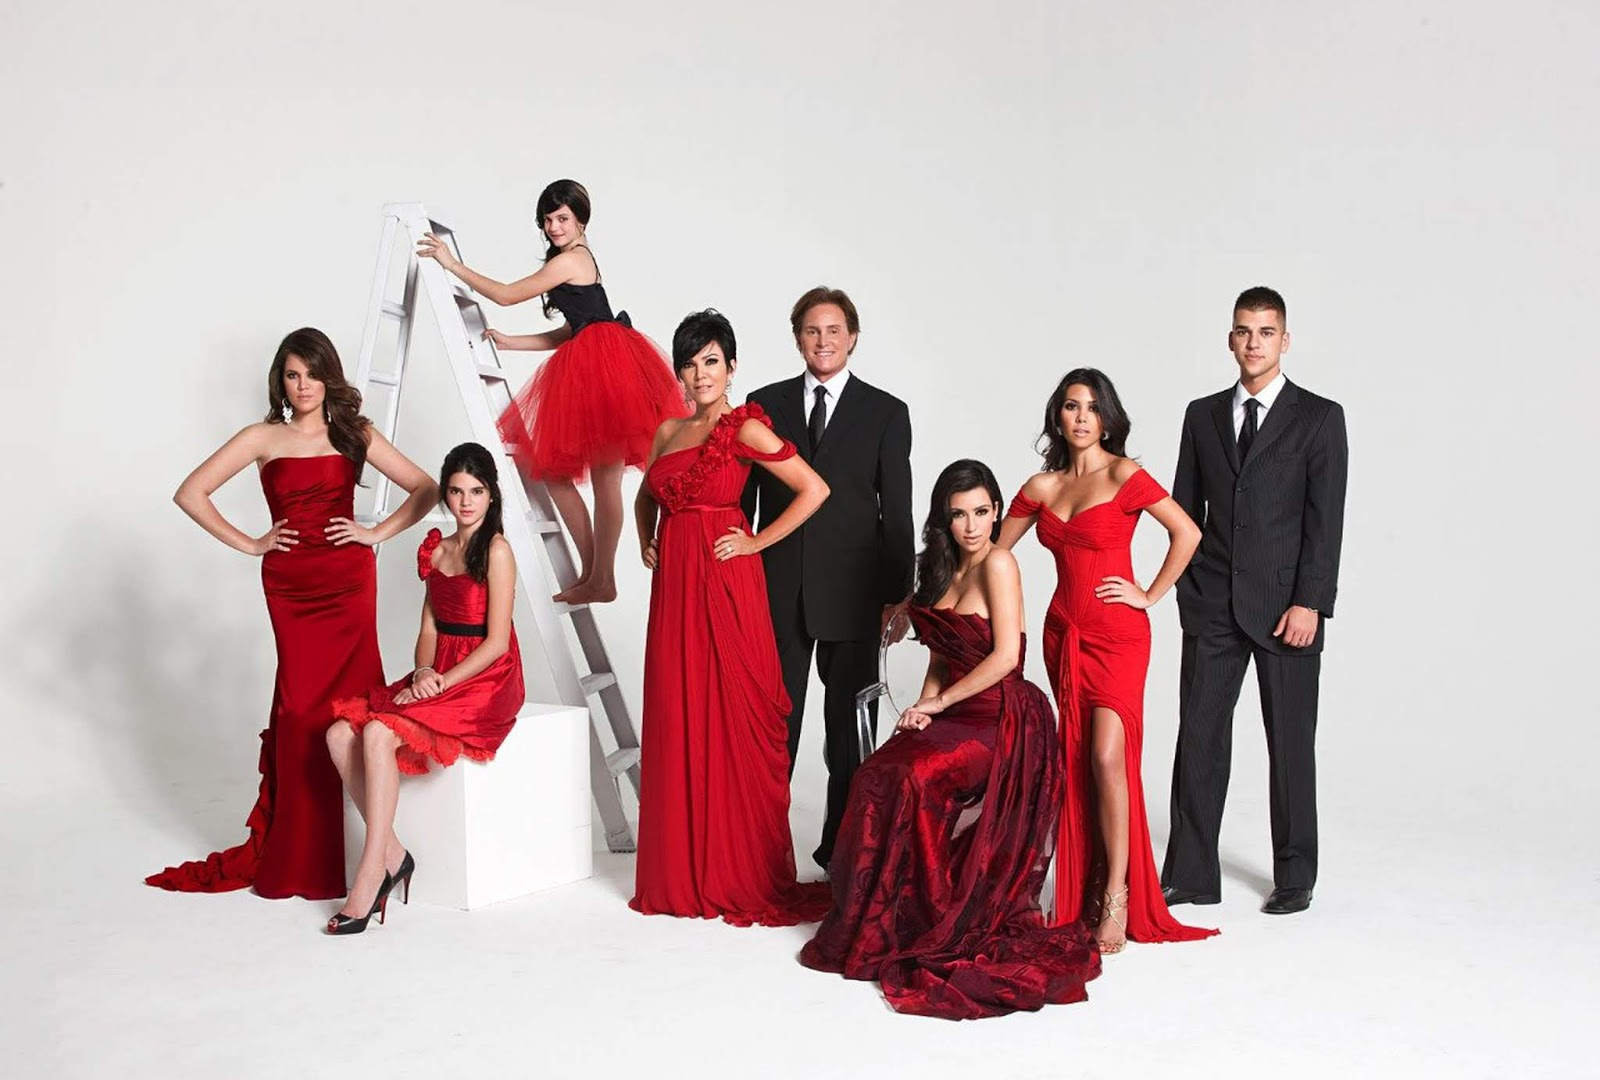 The Kardashians Christmas Card 2008